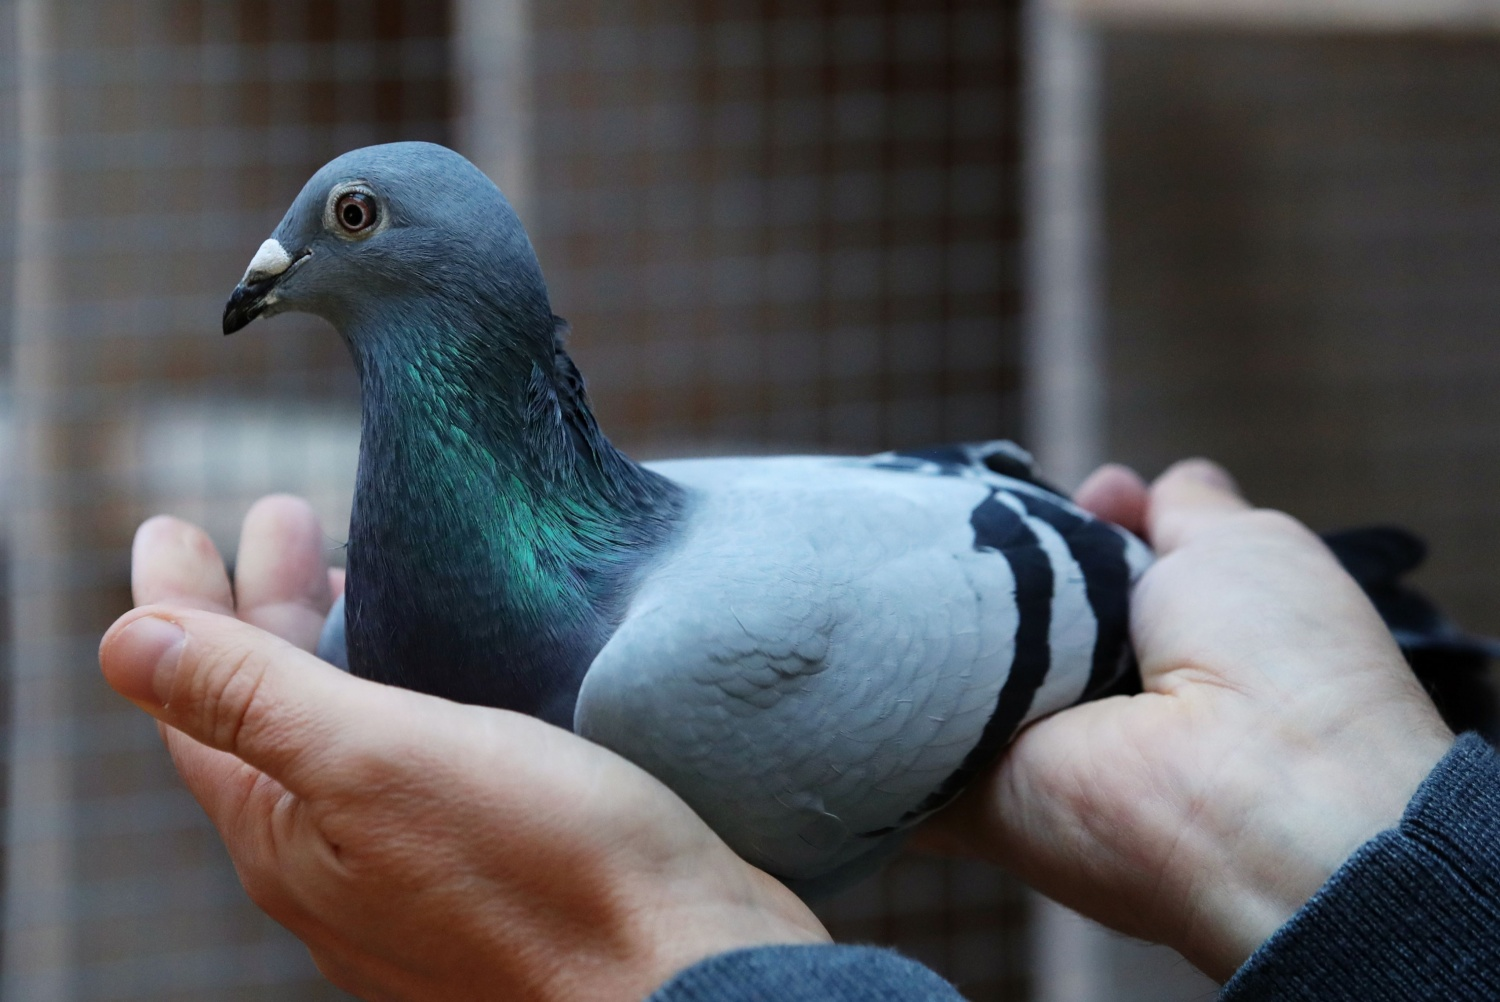 Meet New Kim: The Pigeon Sold at a Whopping $1.9 Million